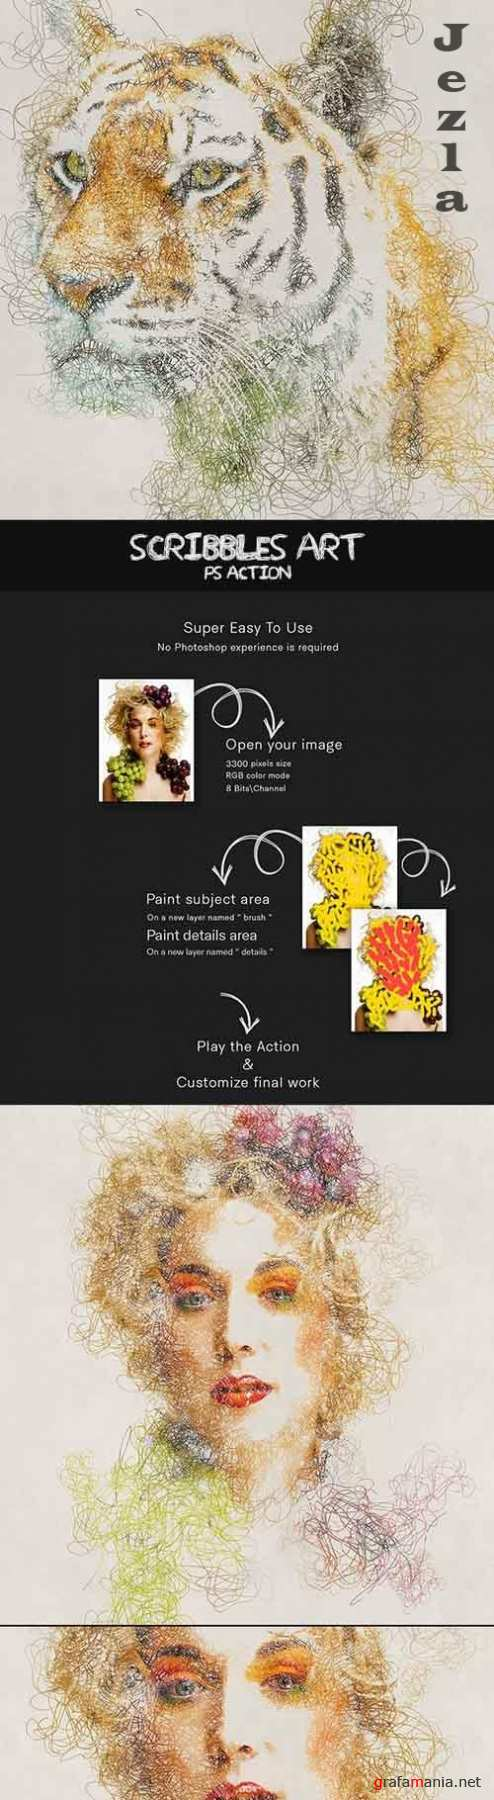 GraphicRiver - Scribbles Art Photoshop Action 30361025